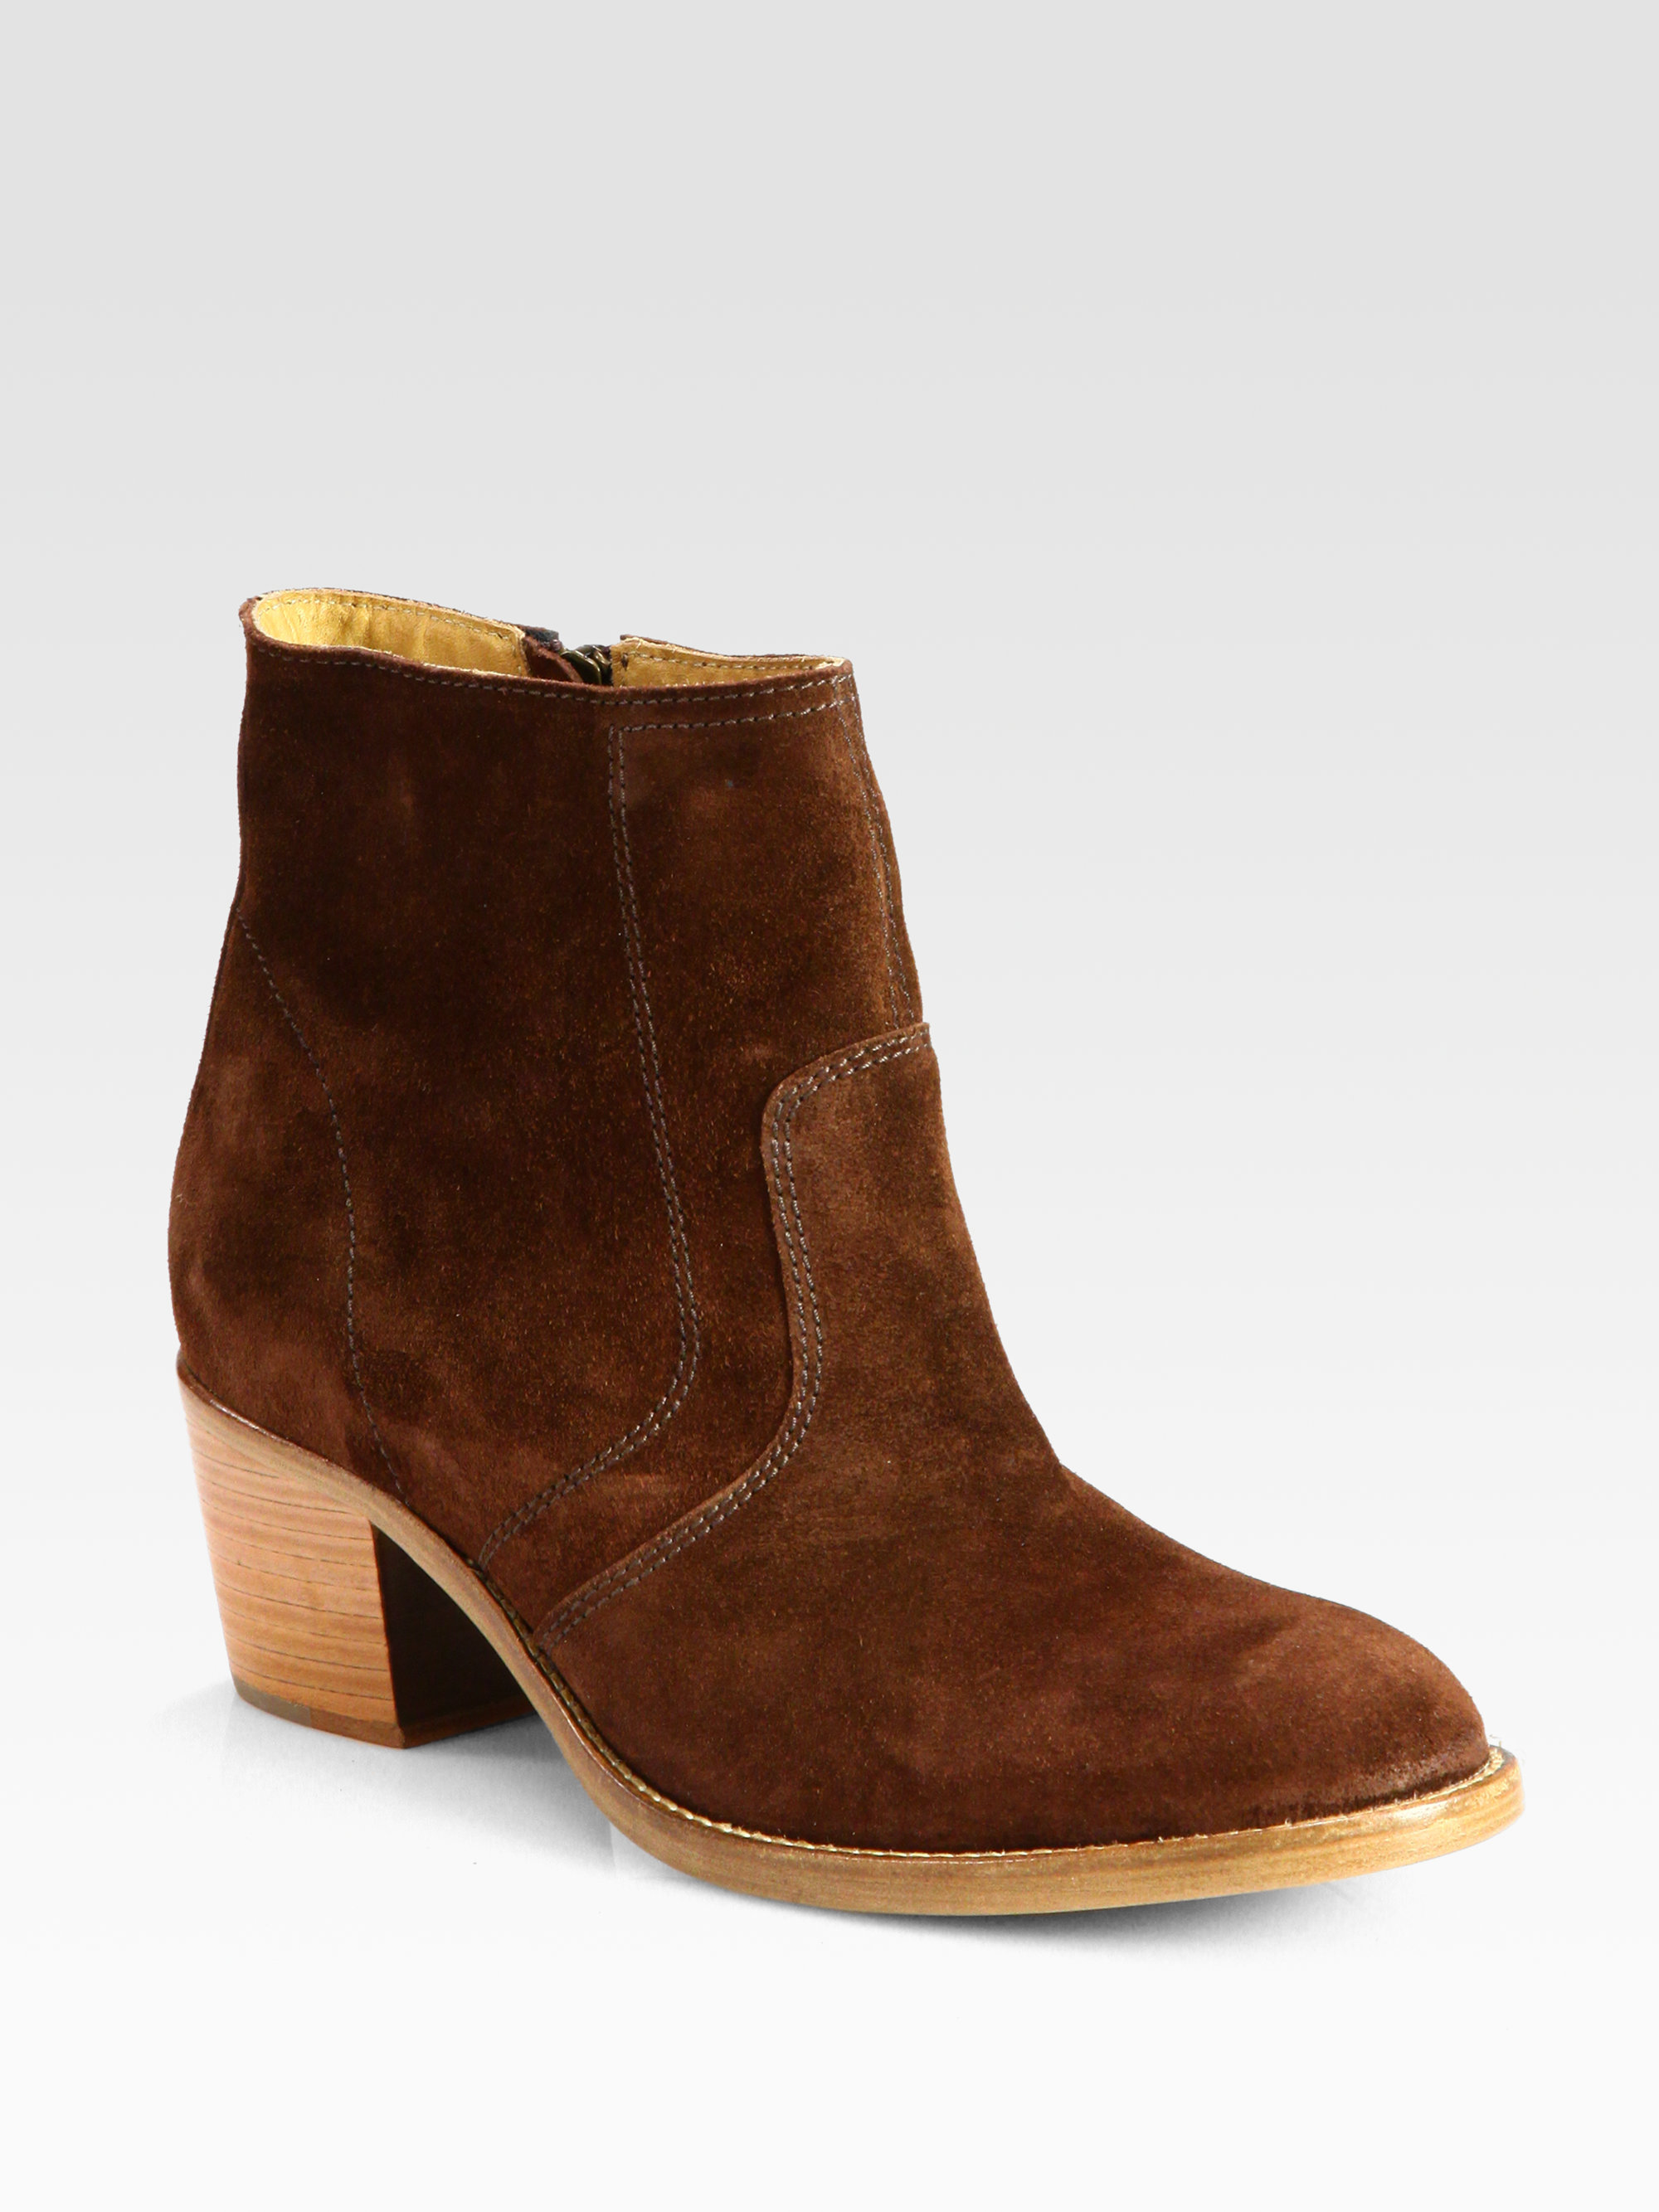 Brown Suede Ankle Boots 5eEK0T2j